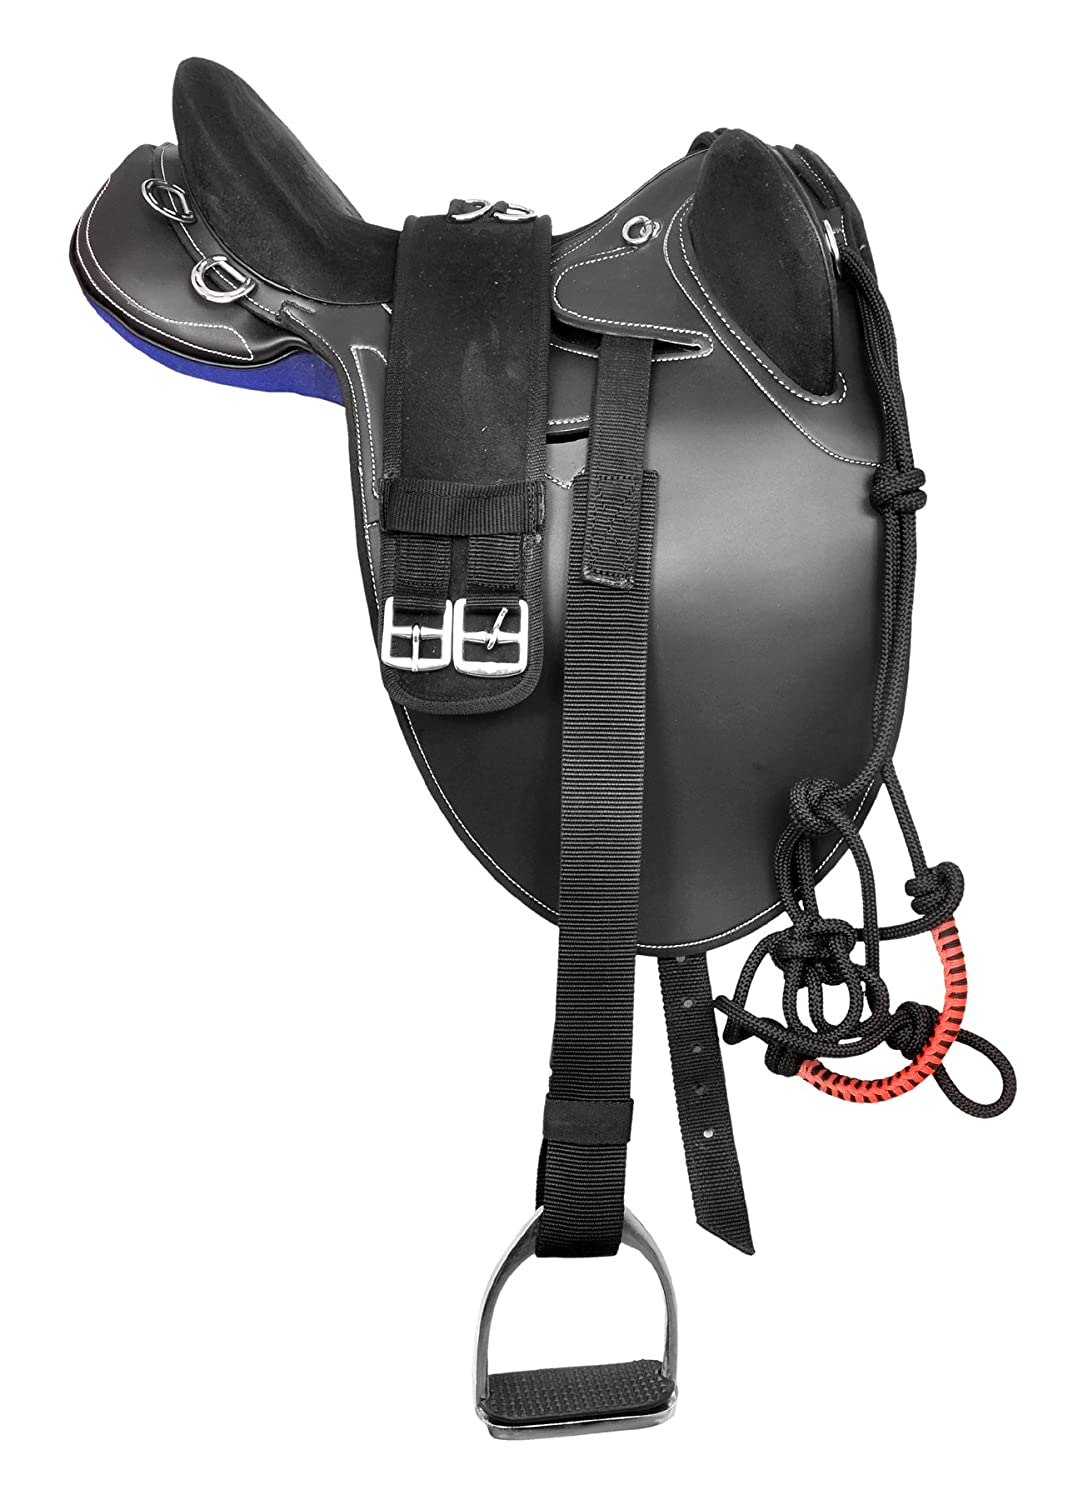 """Manaal Enterprises Synthetic Suede Australian Stock English Horse Saddle Tack Included Stirrup, Get Matching Girth & Rope Halter Size- 14' to 18' Inch Seat Available (16"""" Inch Seat, Black)"""